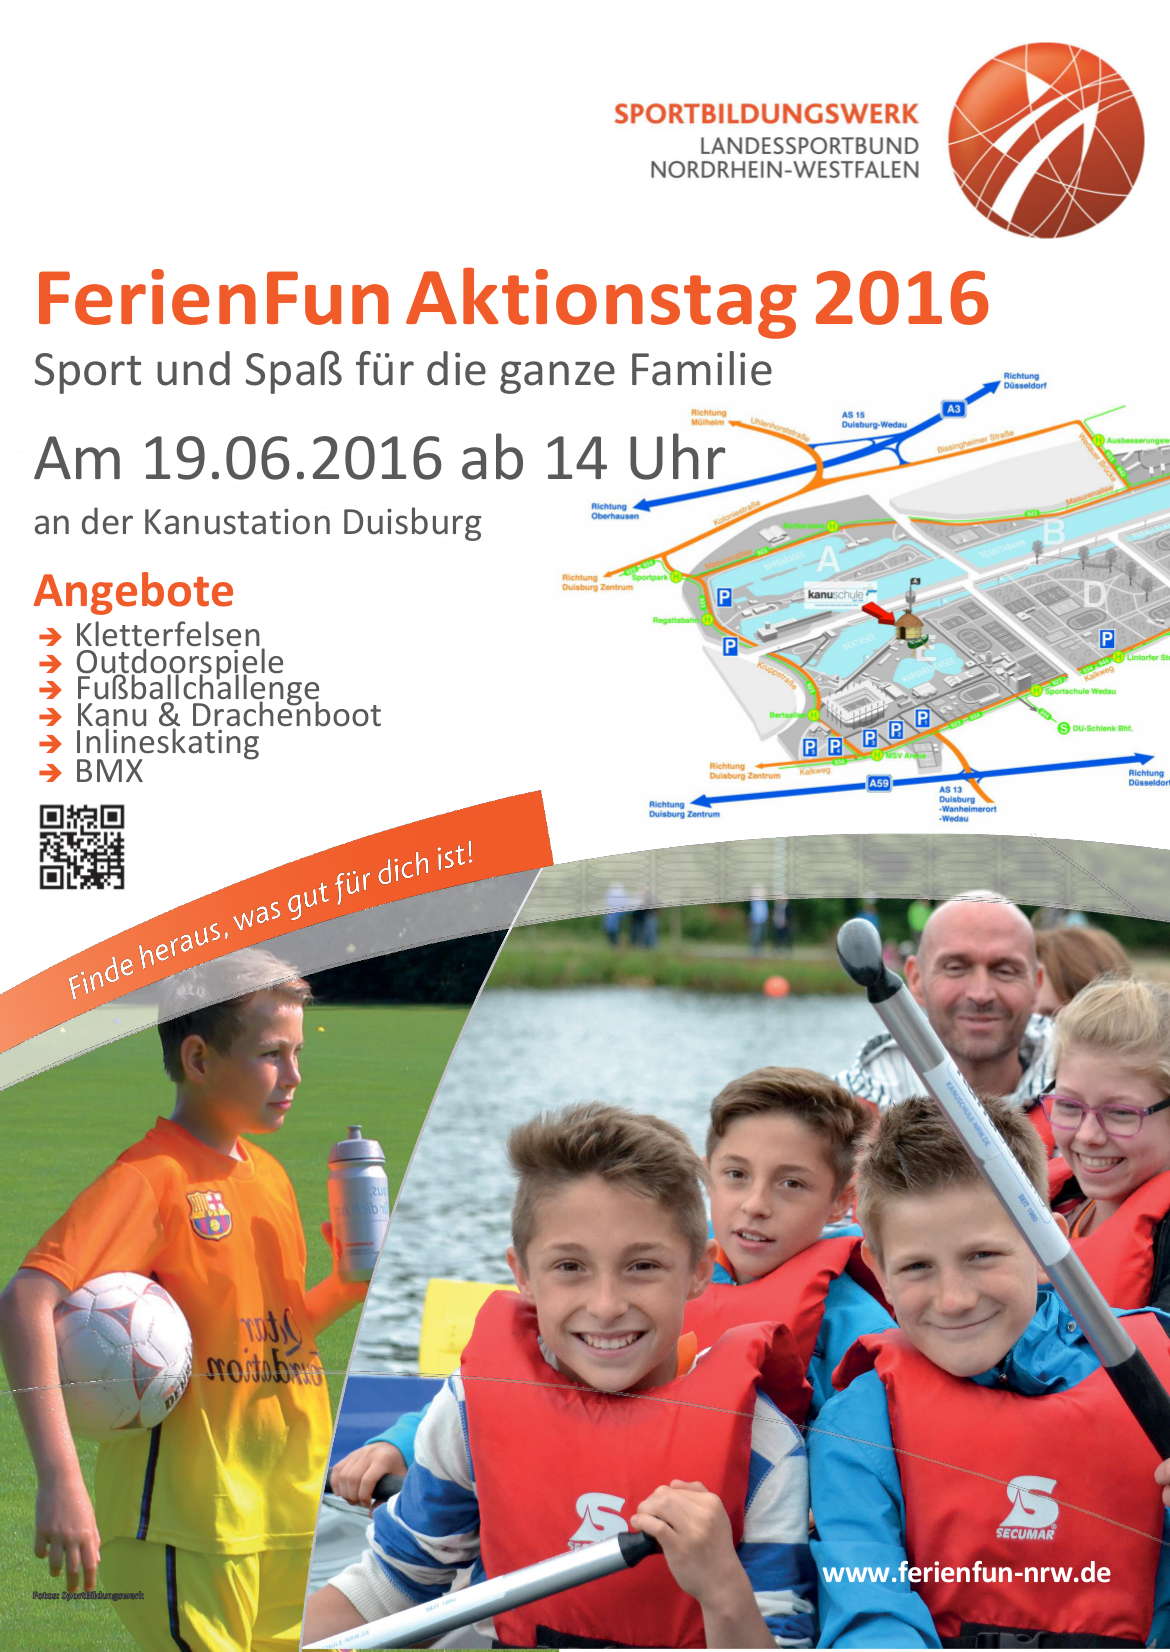 plakat ferien fun aktionstag kanustation 2016